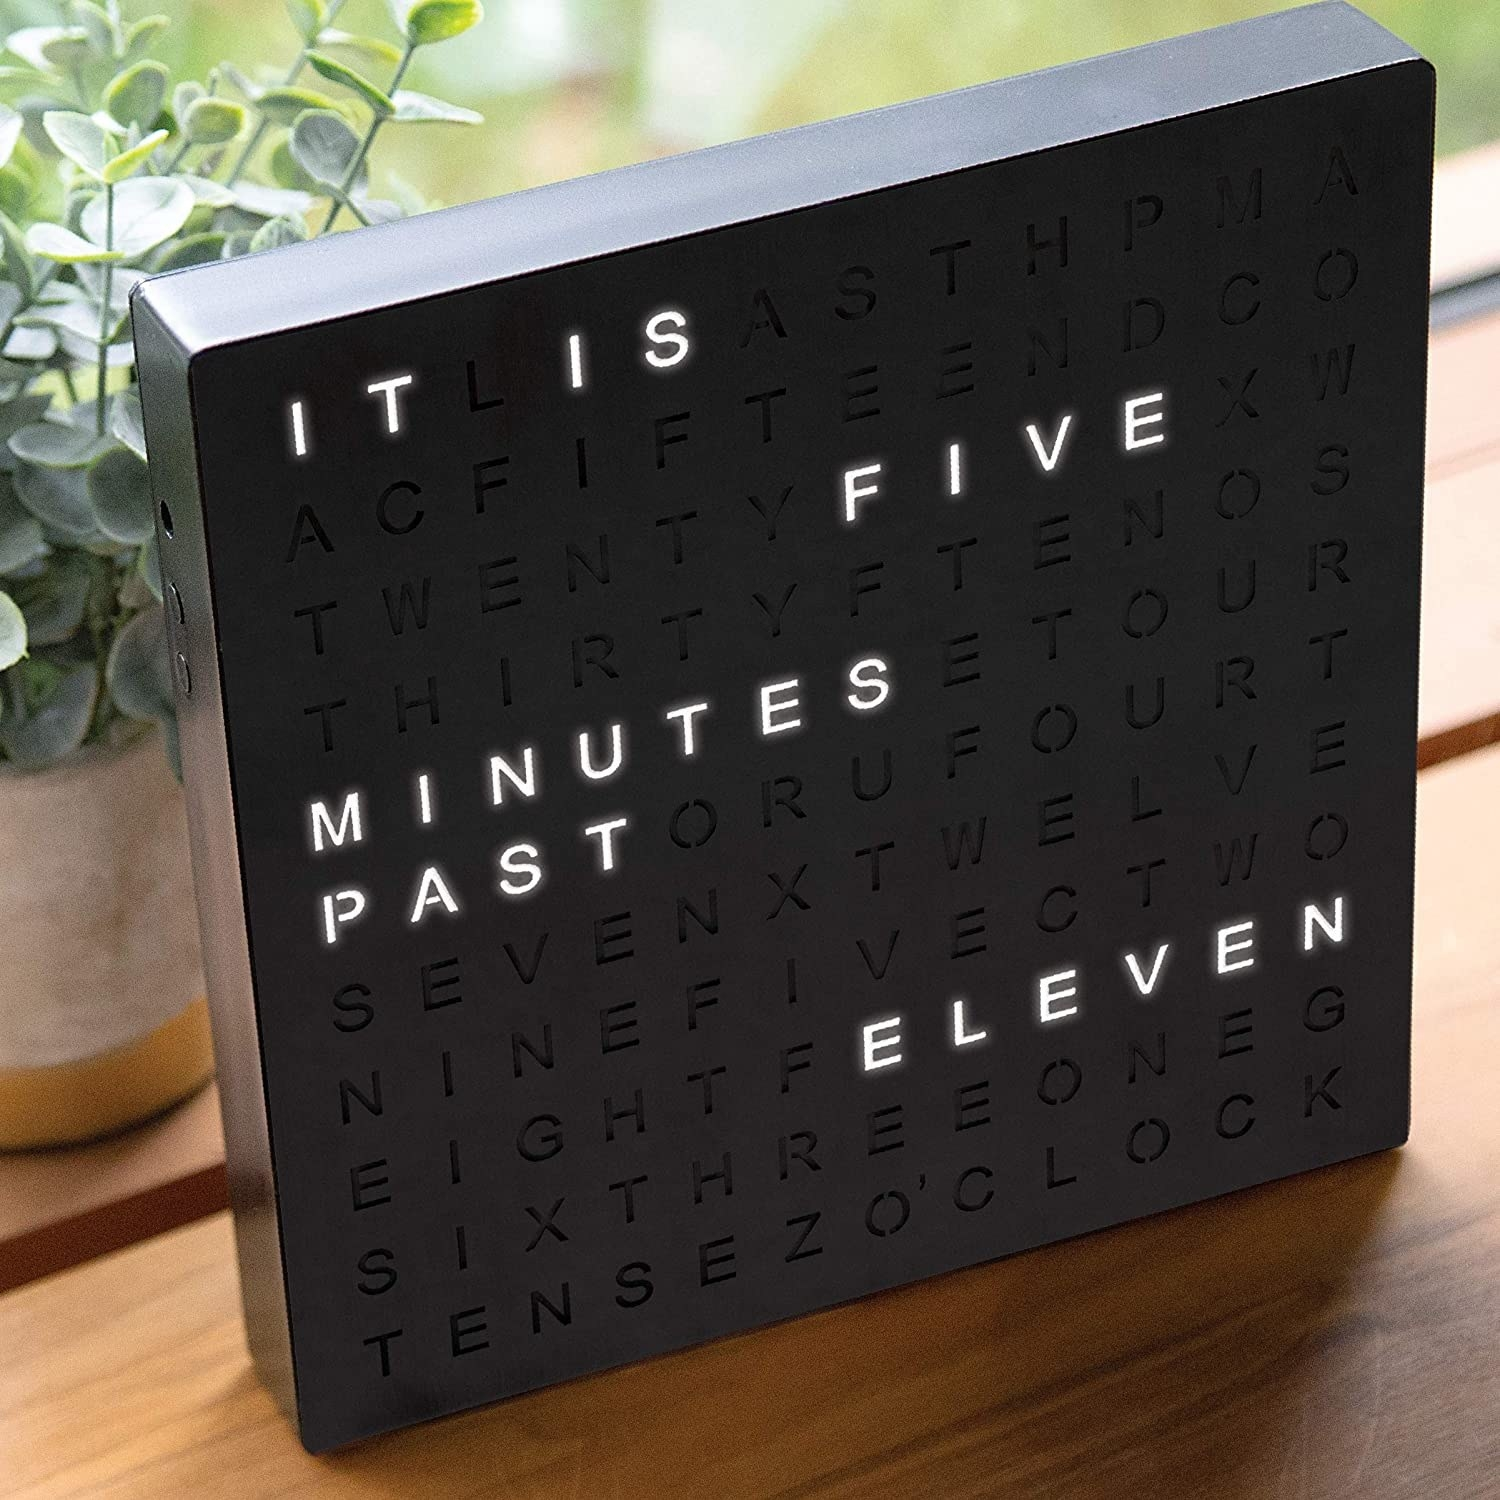 The black digital clock with light-up letters spelling out the time. The display reads it is five minutes past eleven